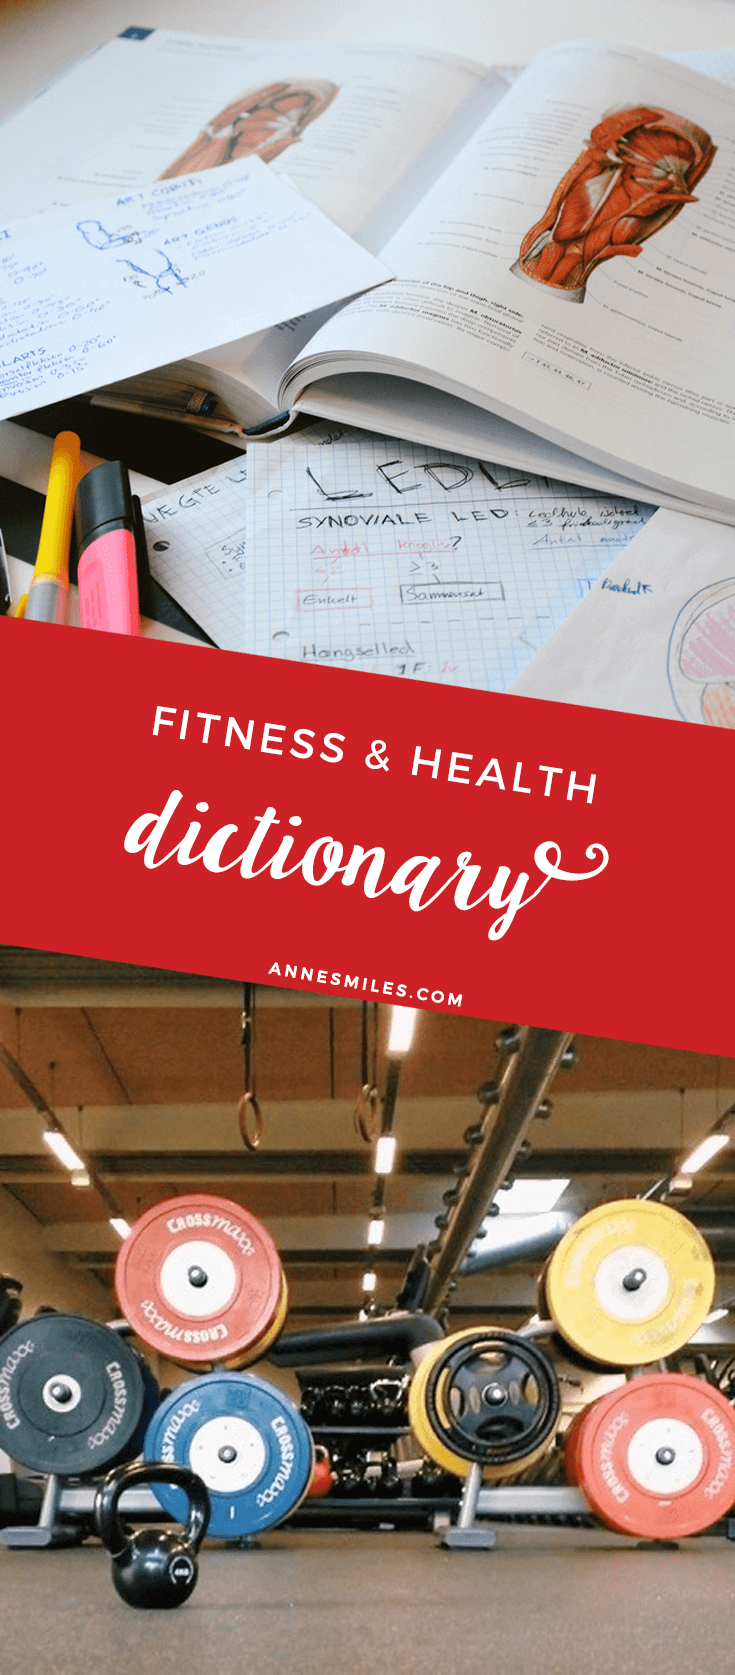 Fitness and health dictionary - Glossary explaining all the weird words and acronyms from the fitness world. Click through to read more, or repin to save for later!